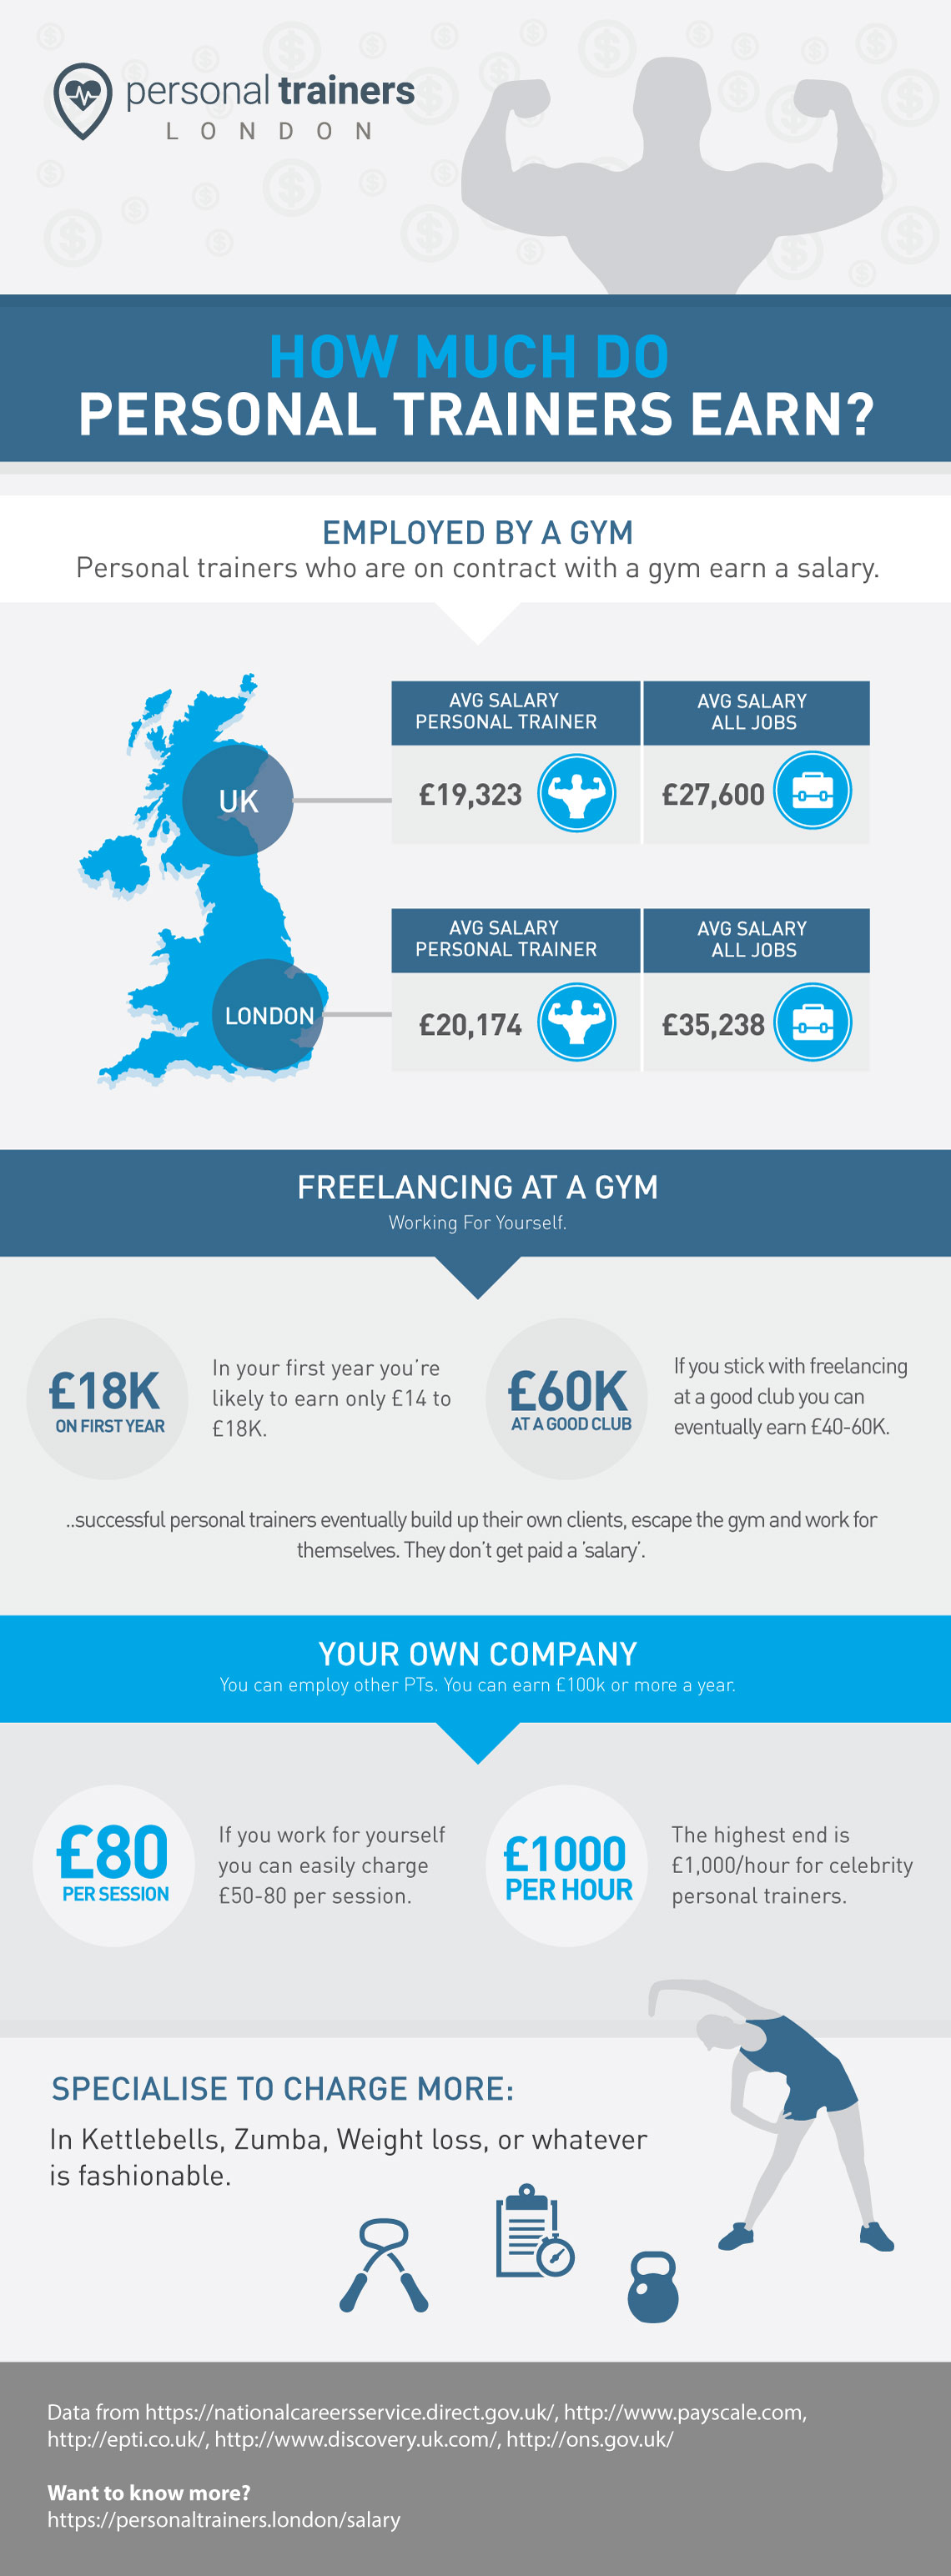 personal trainer salary in london vs the uk guide infographic showing how much personal trainers earn in london and the uk